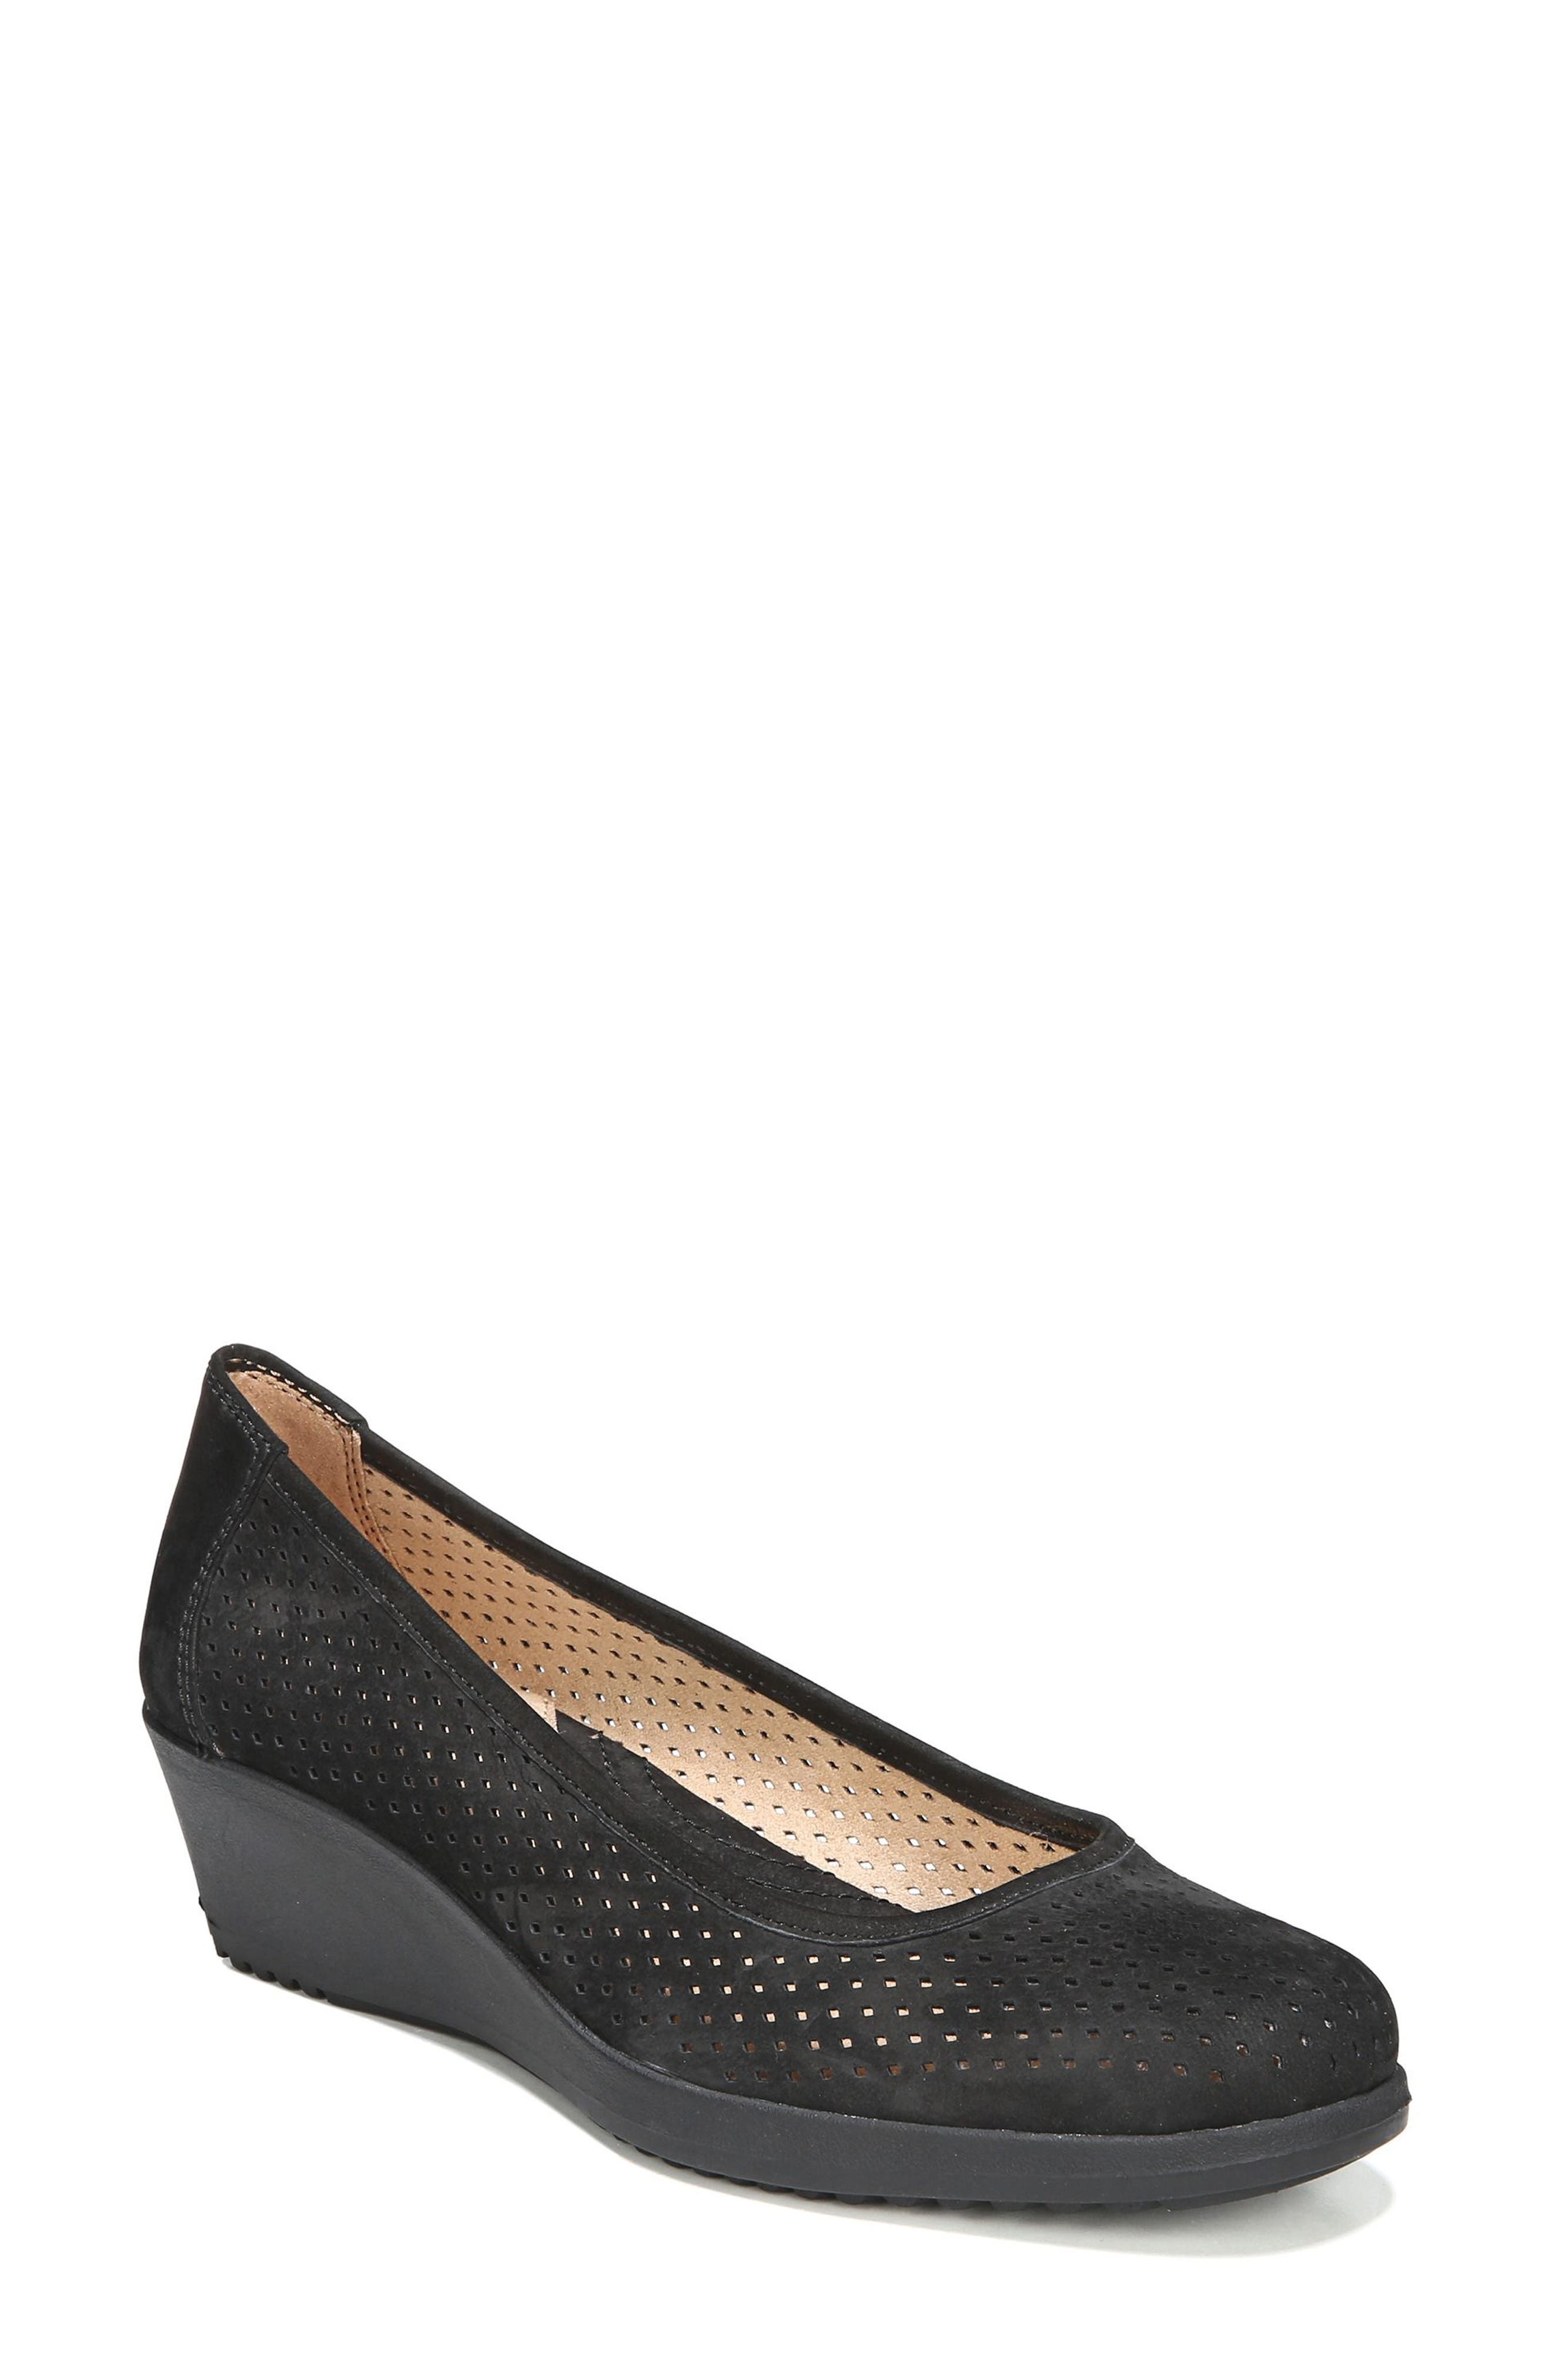 Betina II Wedge,                             Main thumbnail 1, color,                             Black Leather